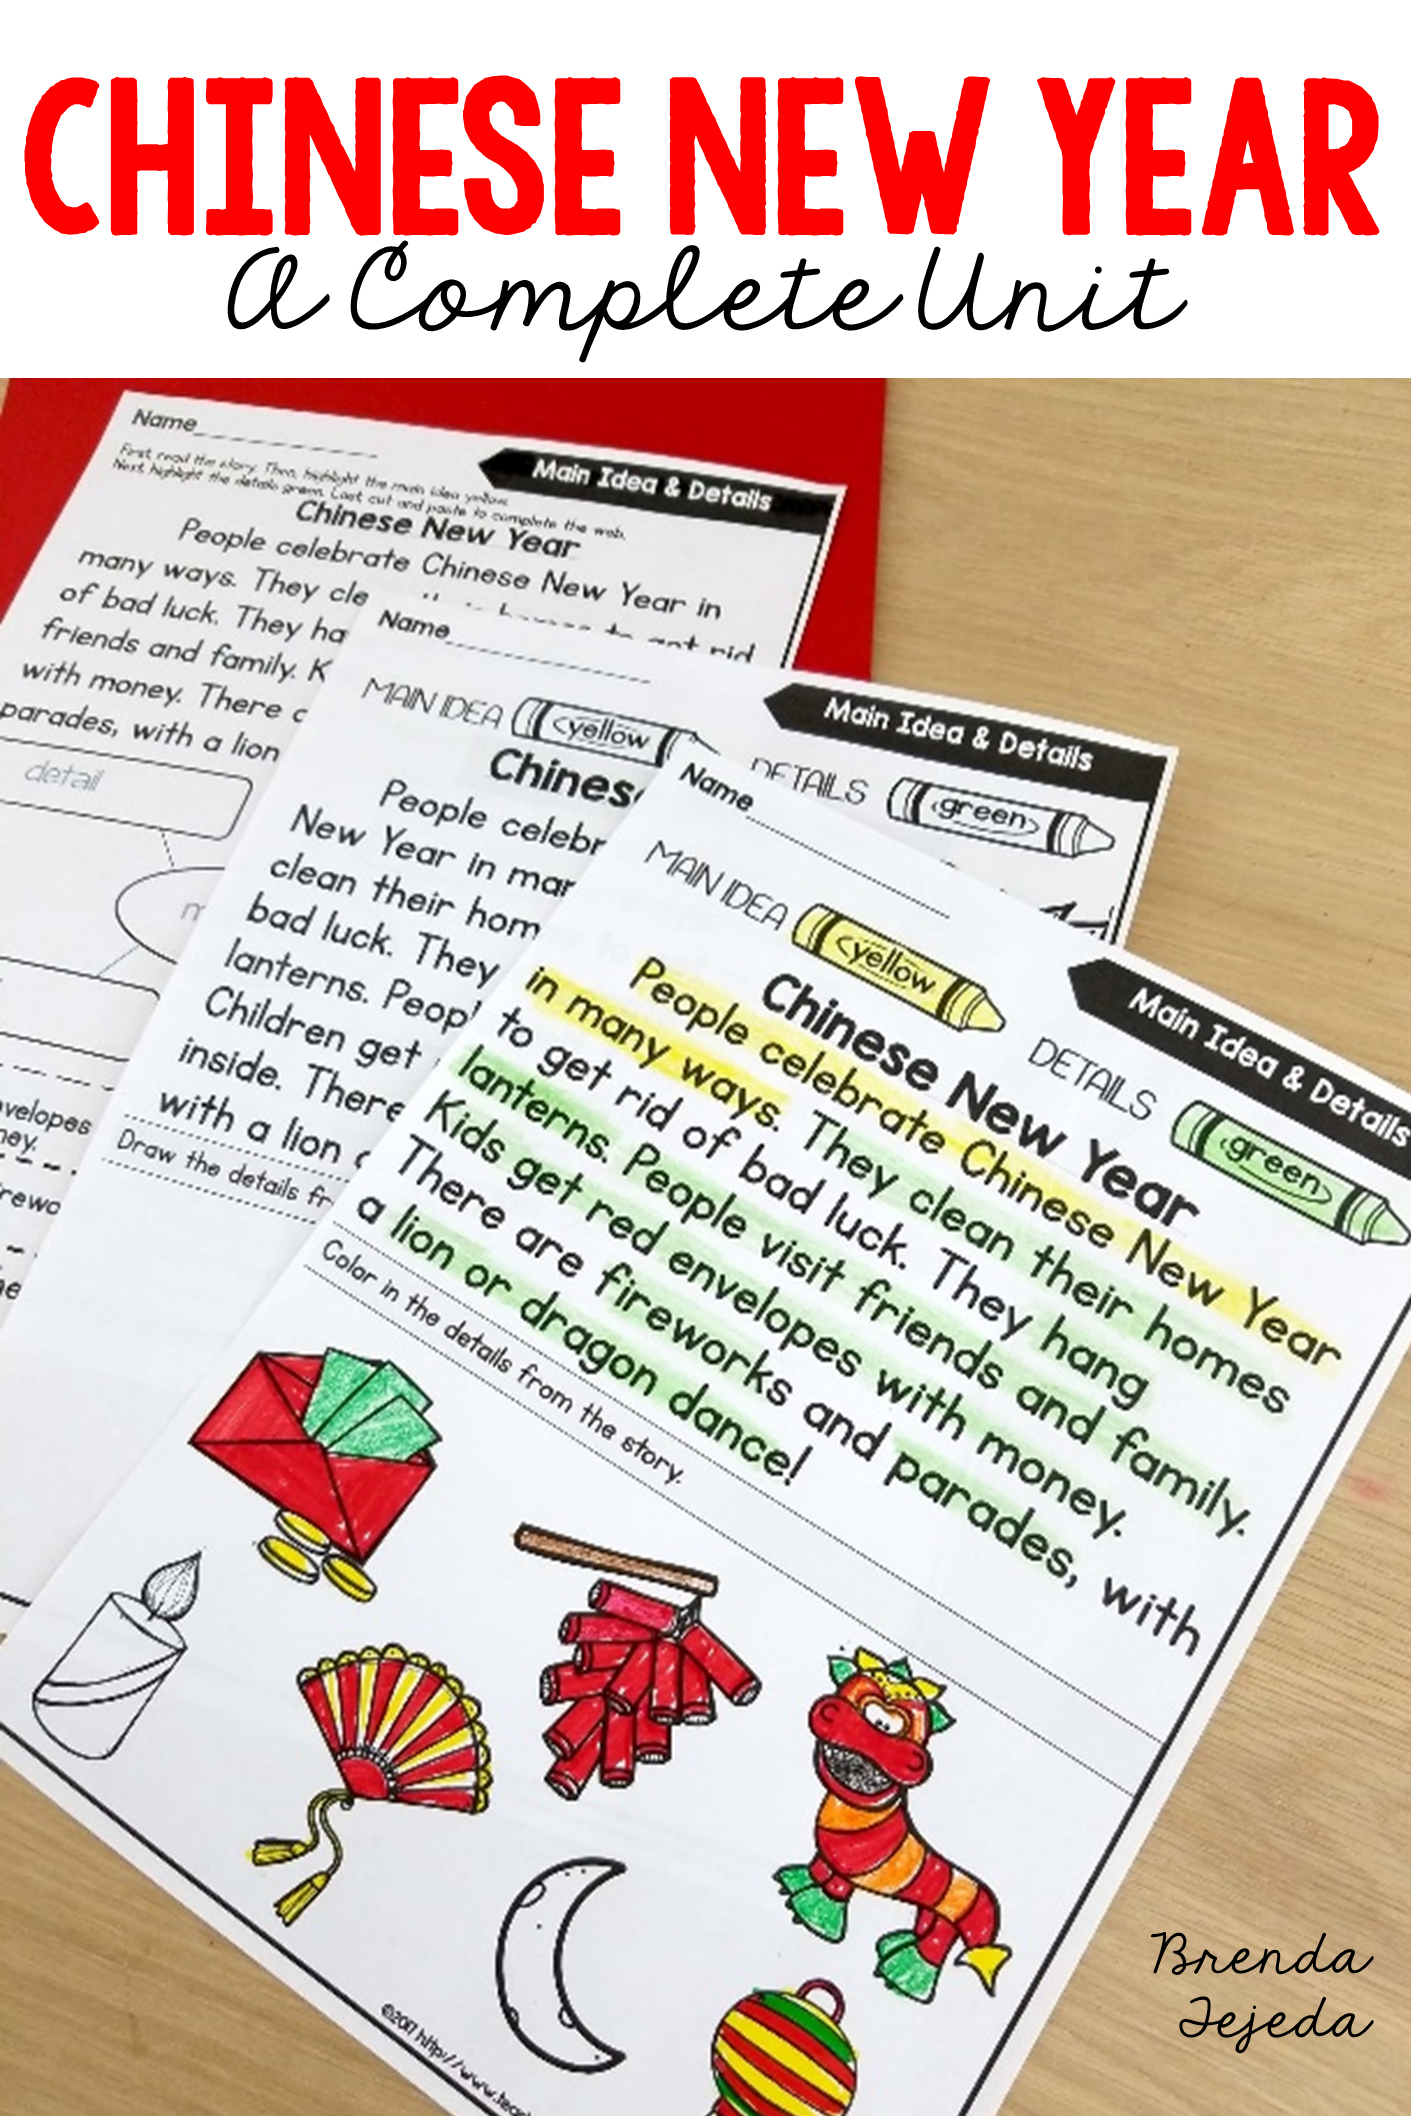 This Resource Has Activities For Chinese New Year Including Reading Passages Writing Act Chinese New Year Activities Chinese New Year Crafts Chinese New Year [ 2116 x 1411 Pixel ]